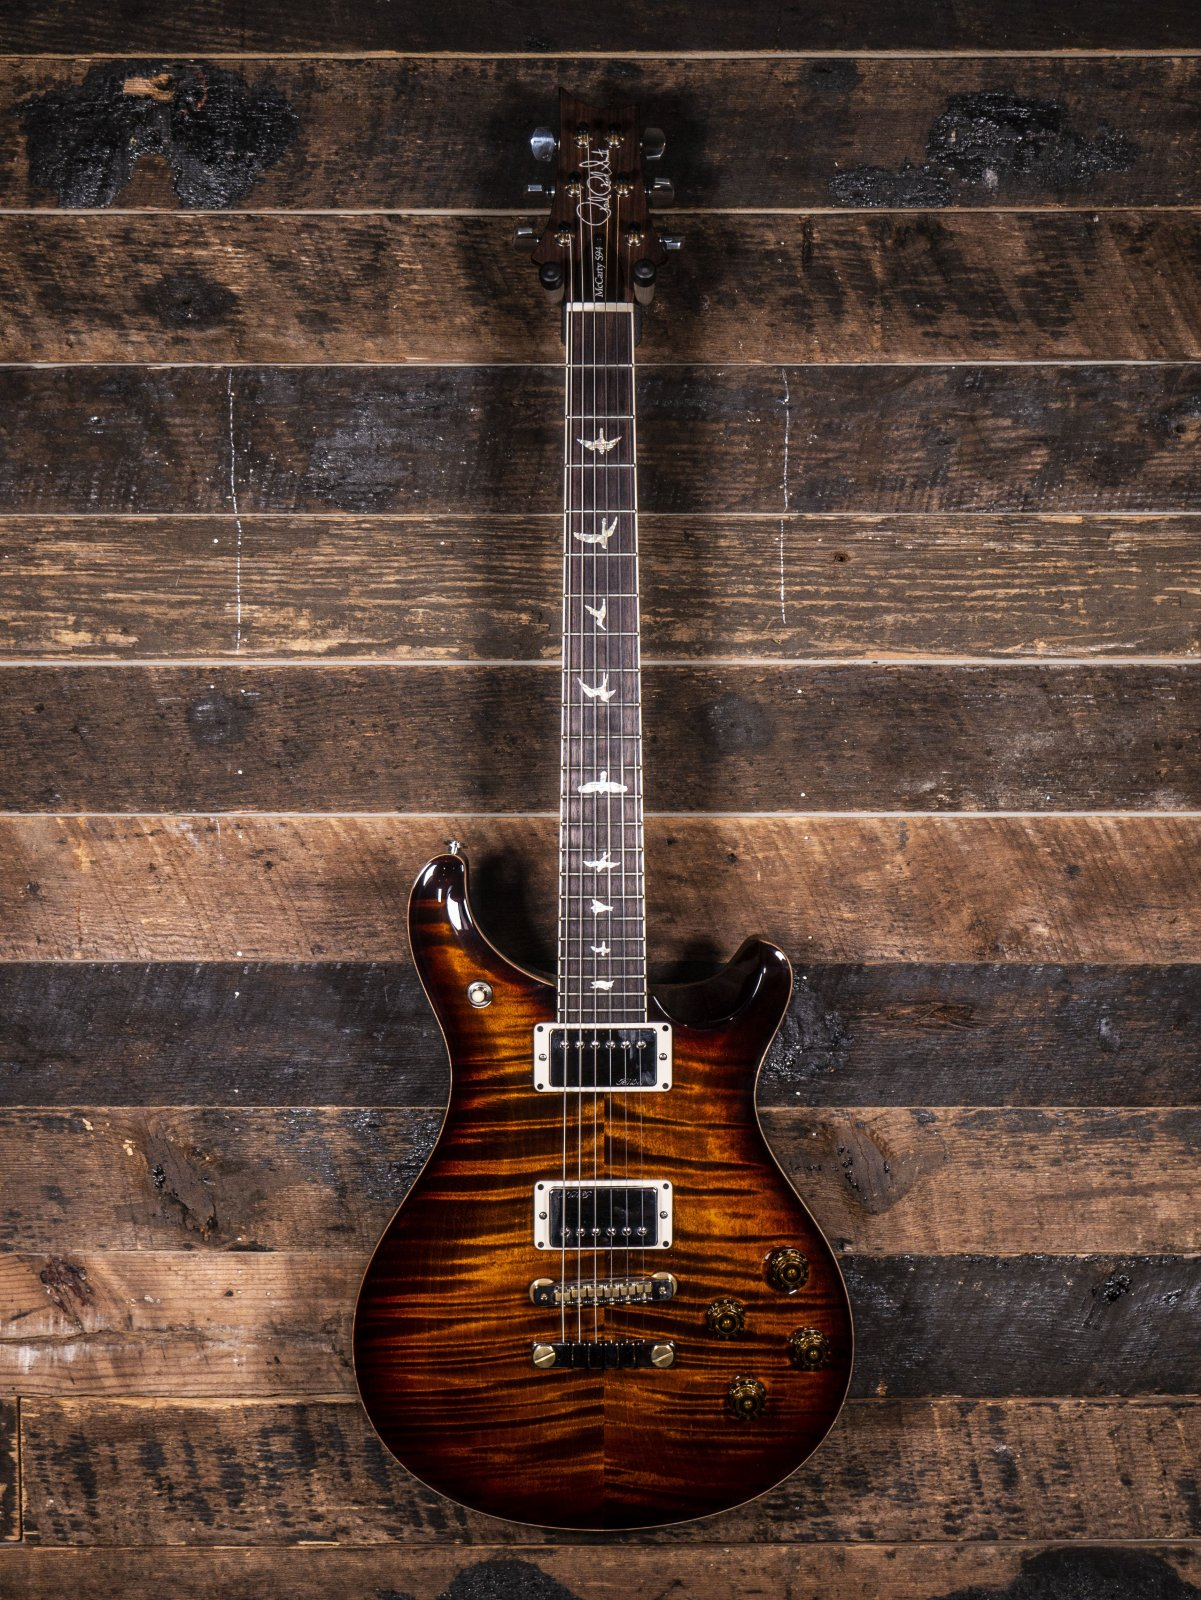 PRS McCarty 594 10 Top Select Western Maple Top Black Gold Non-Wrap